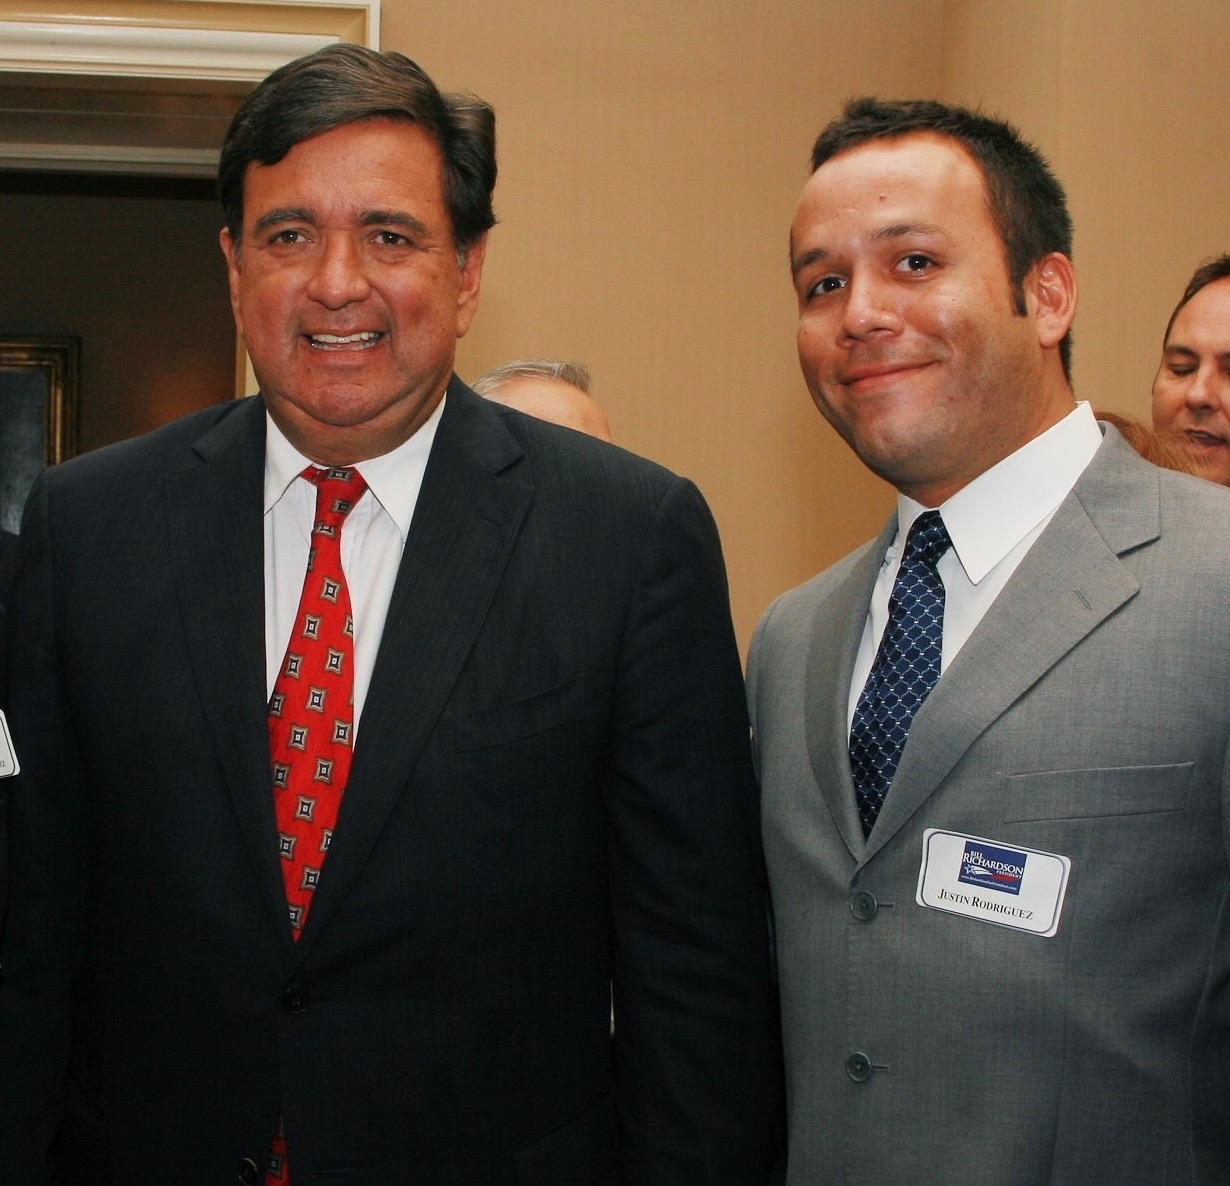 Attorney Justin Rodriguez with Bill Richardson, former diplomat, governor of New Mexico, Ambassador to the United Nations and Energy Secretary in the Clinton administration.